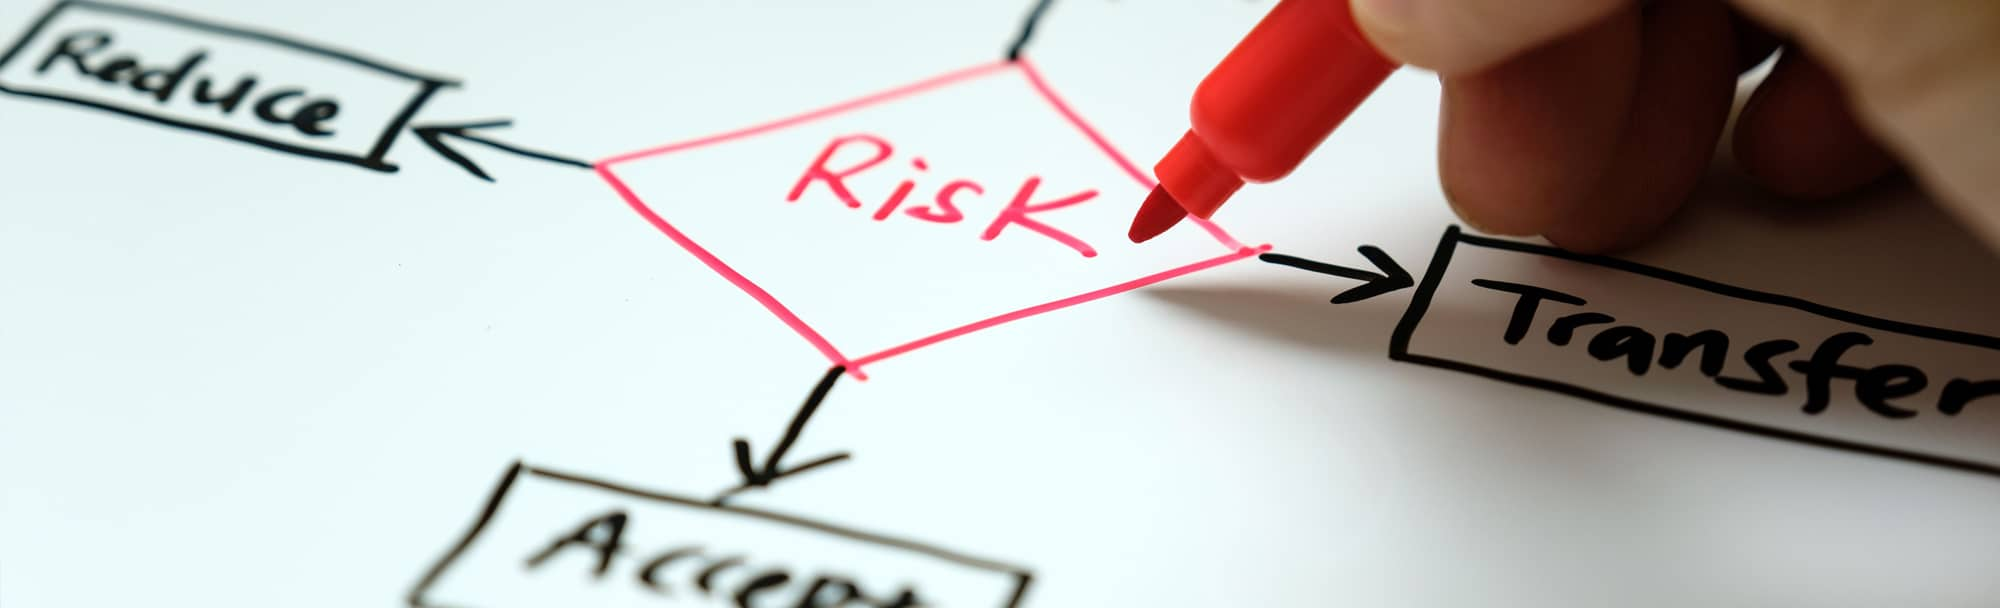 risk assessment white board graphic